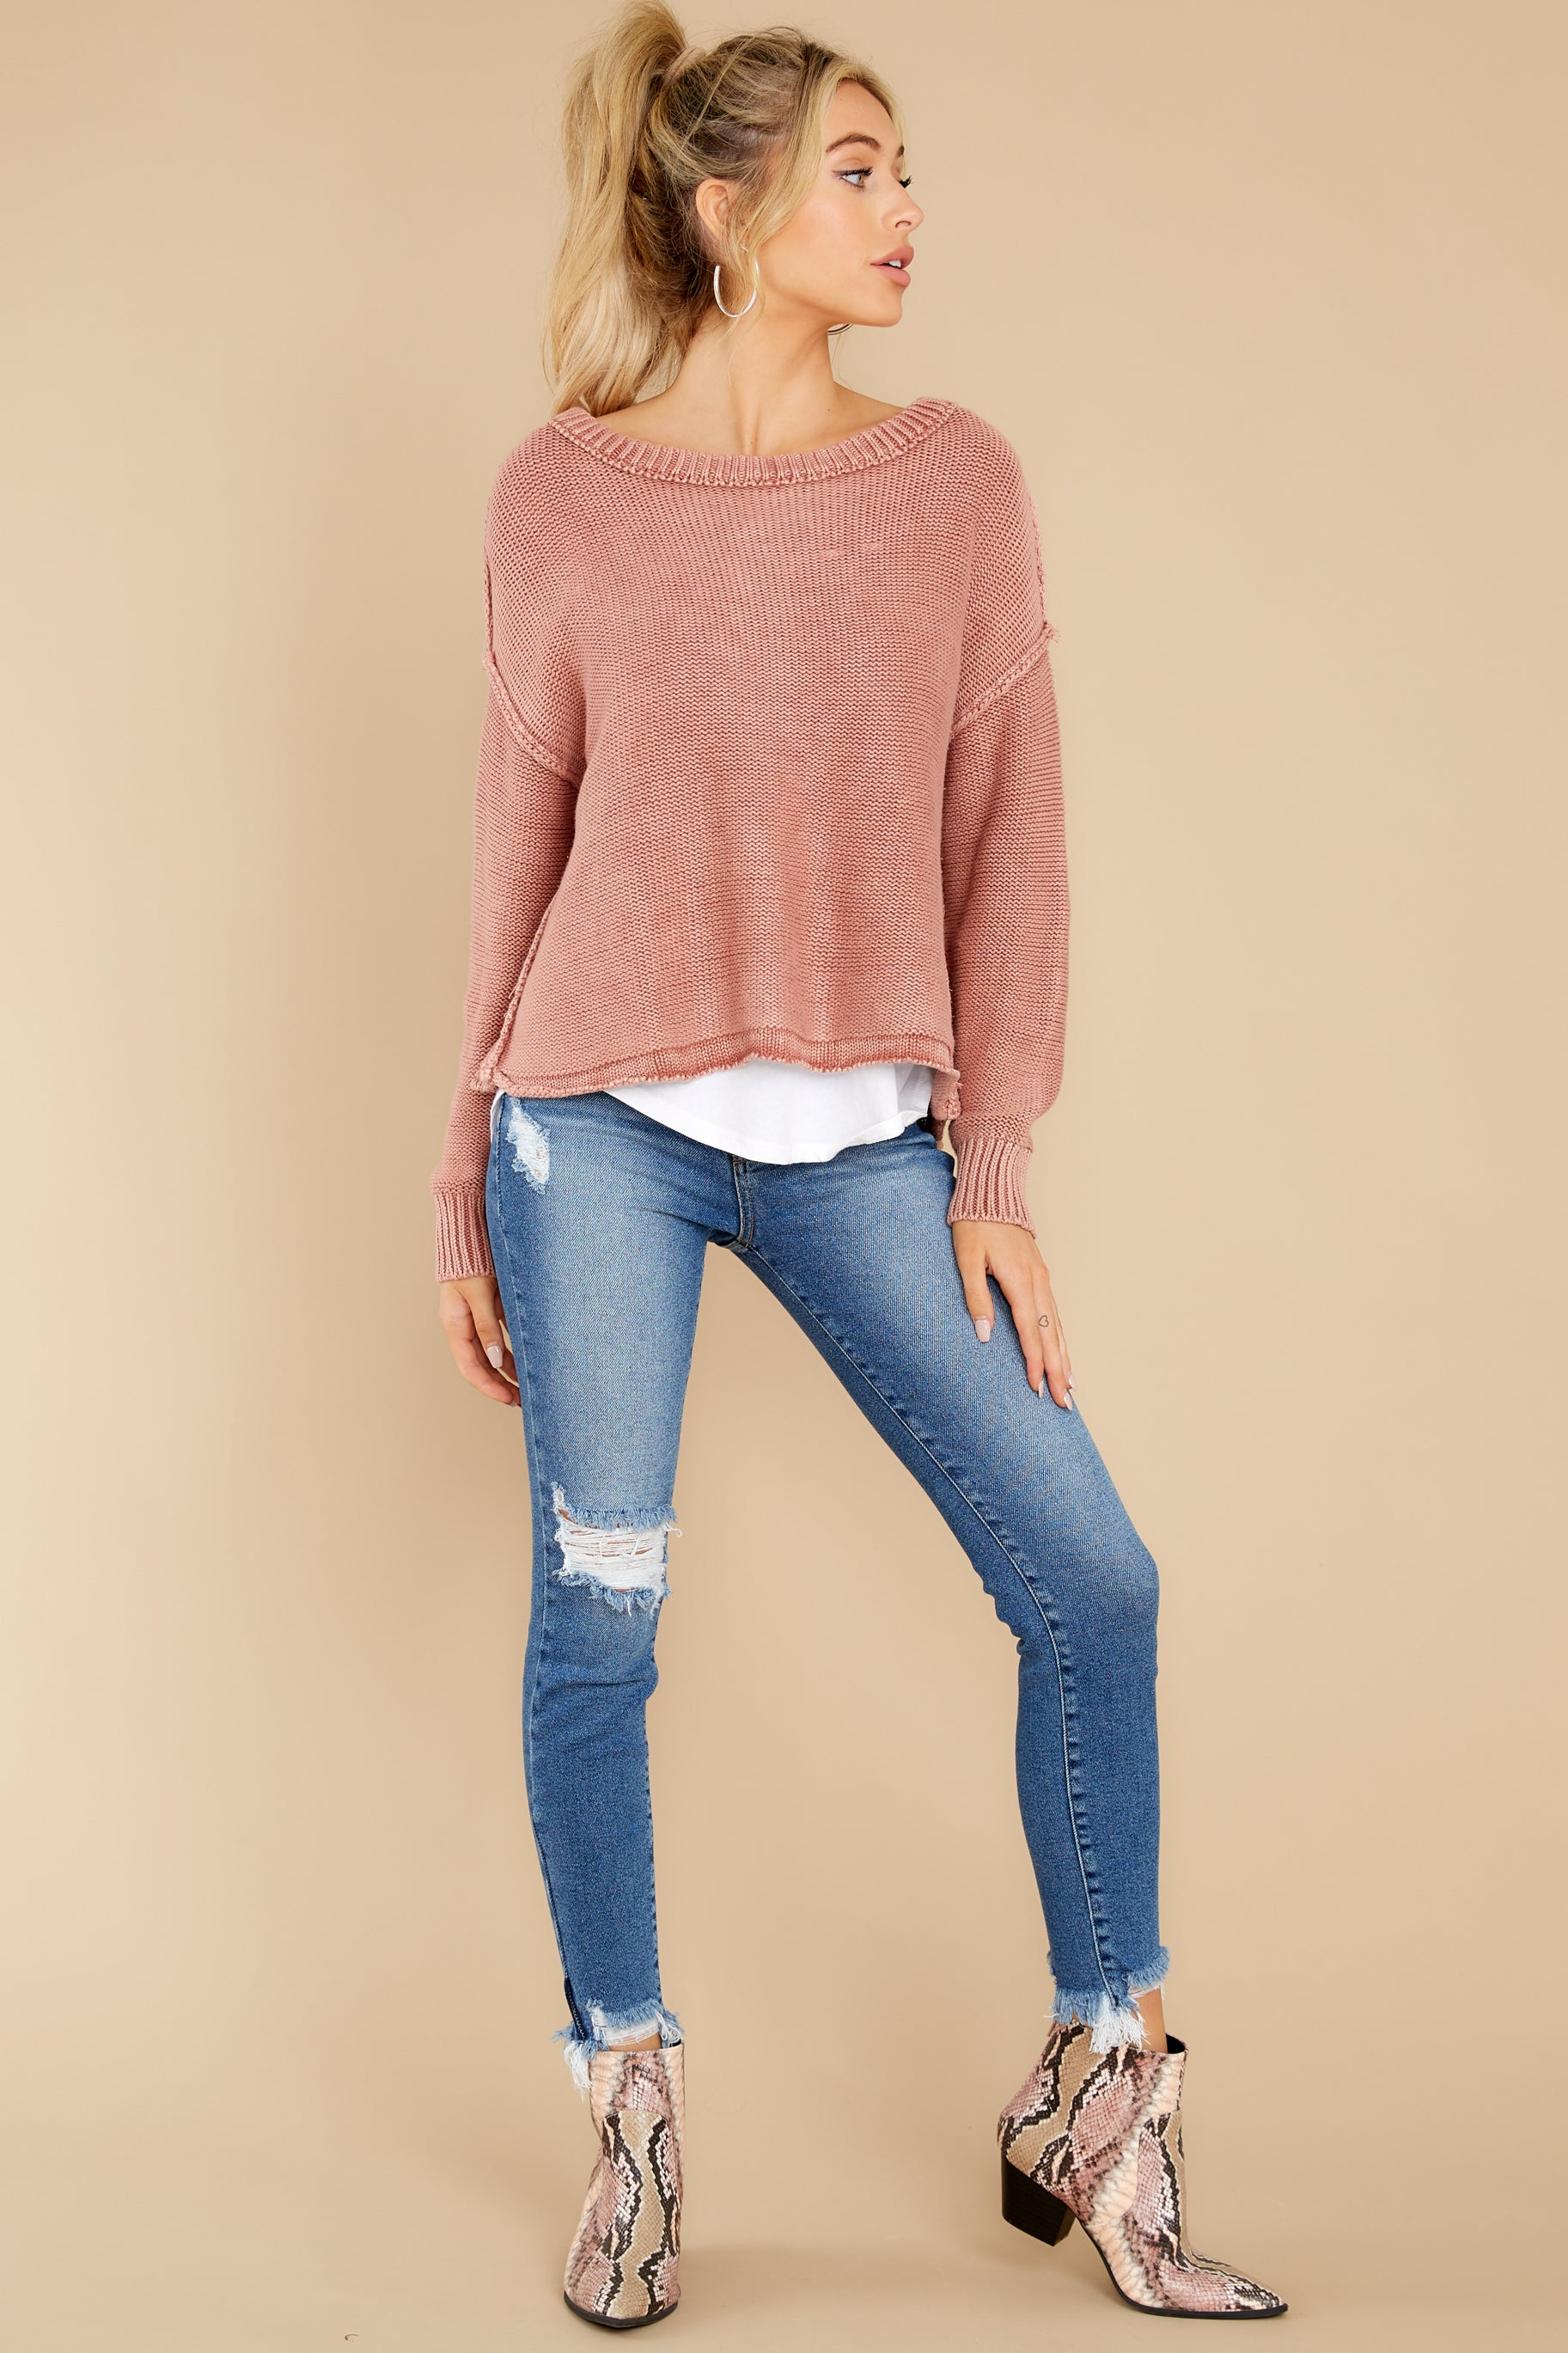 4 All Your Love Dusty Rose Sweater at reddress.com